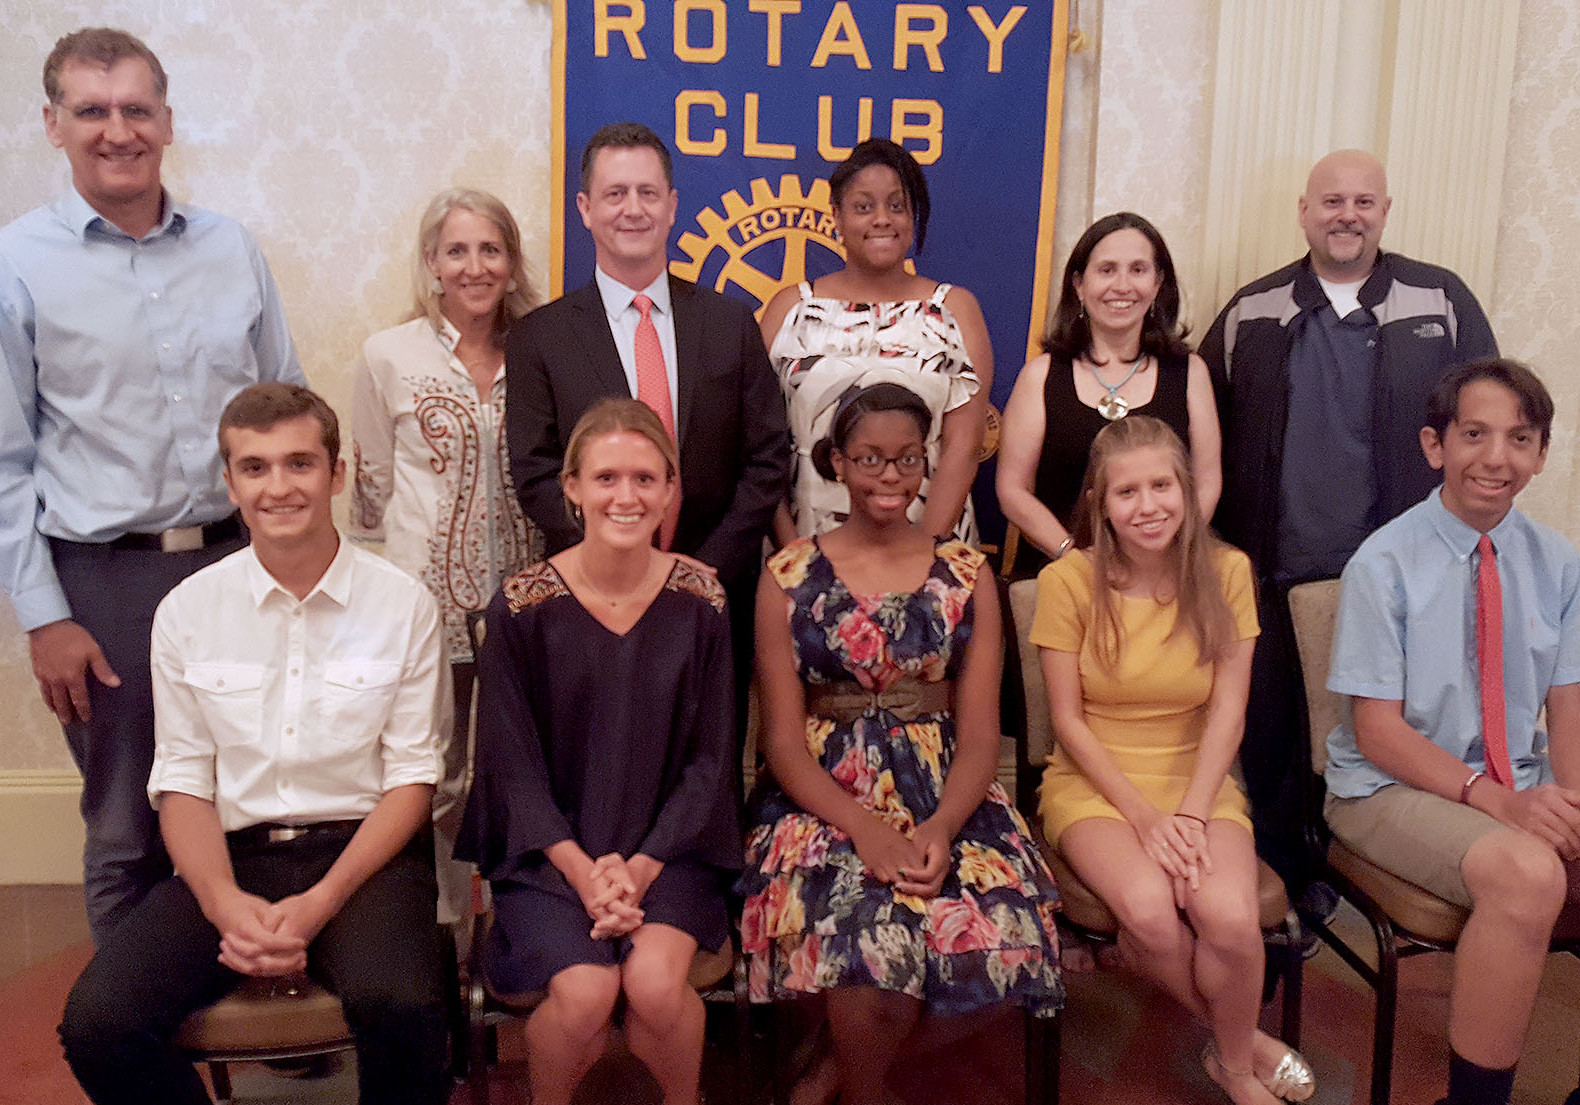 (above l-r) Seated in front of their parents scholarship winners with their parents: Lorik Berisha, Samantha Hanley, Ife Campbell, Juliana Nociara,; and John Berardi.